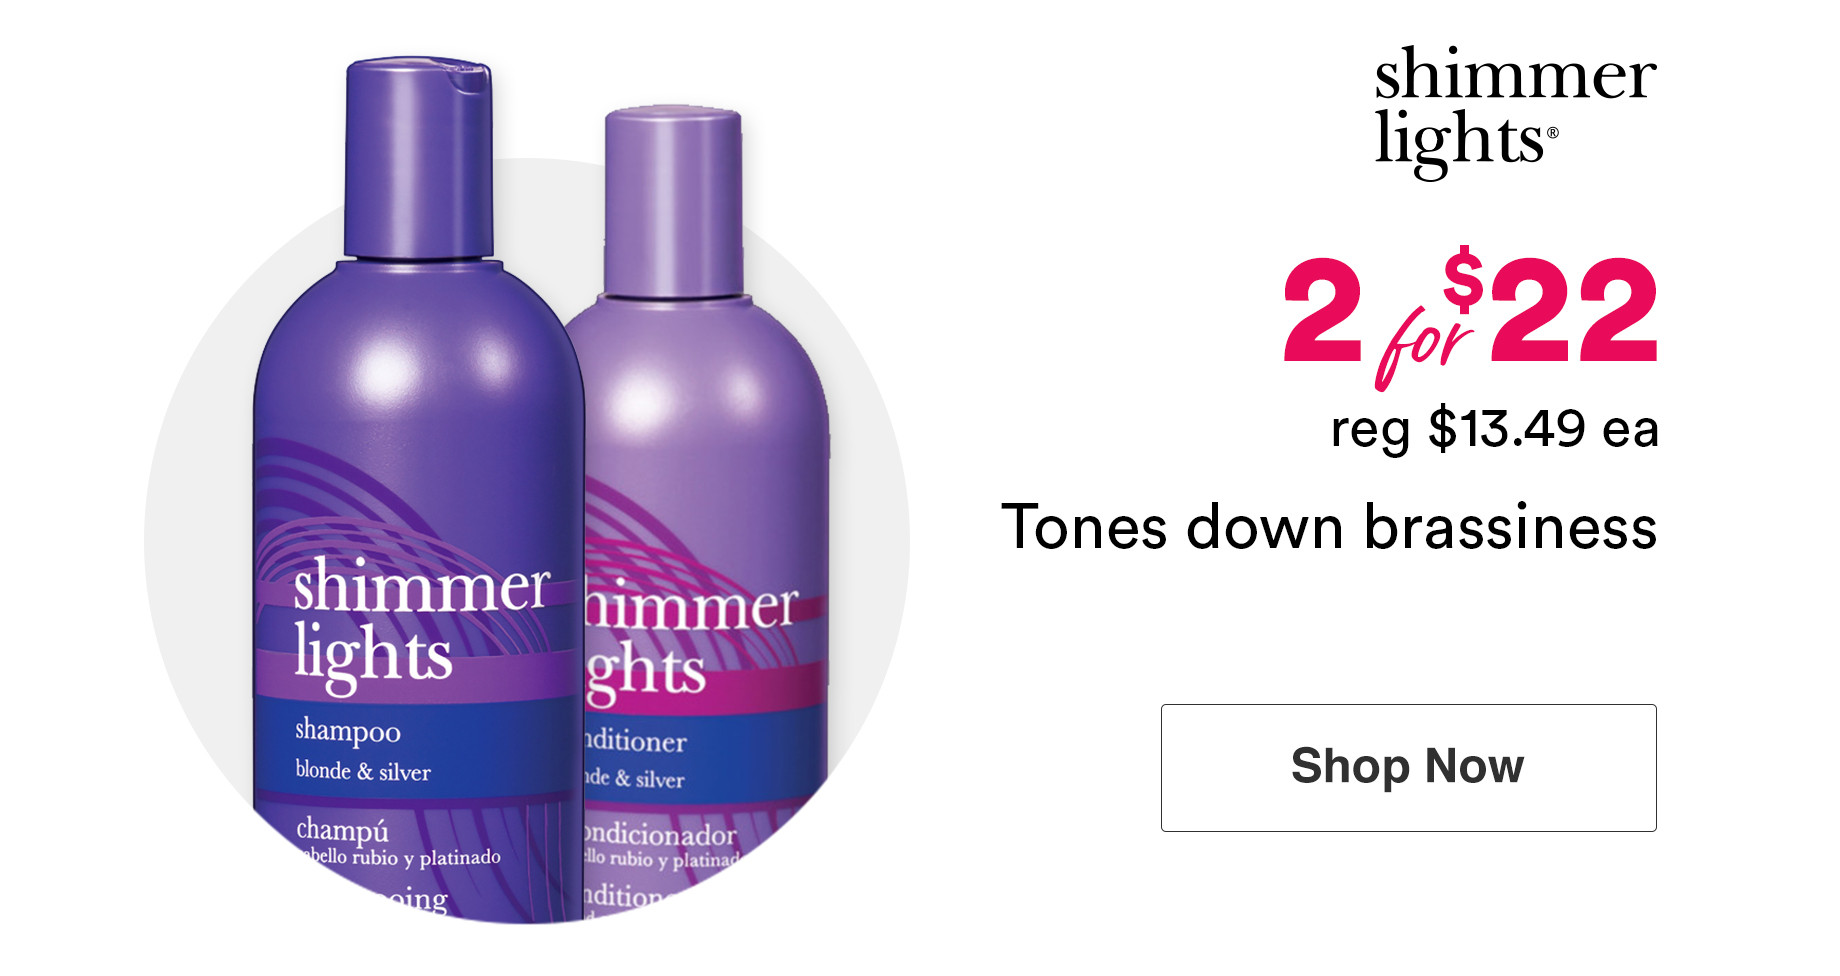 Shimmer Lights Purple Shampoos and Conditioners are now 2 for $22